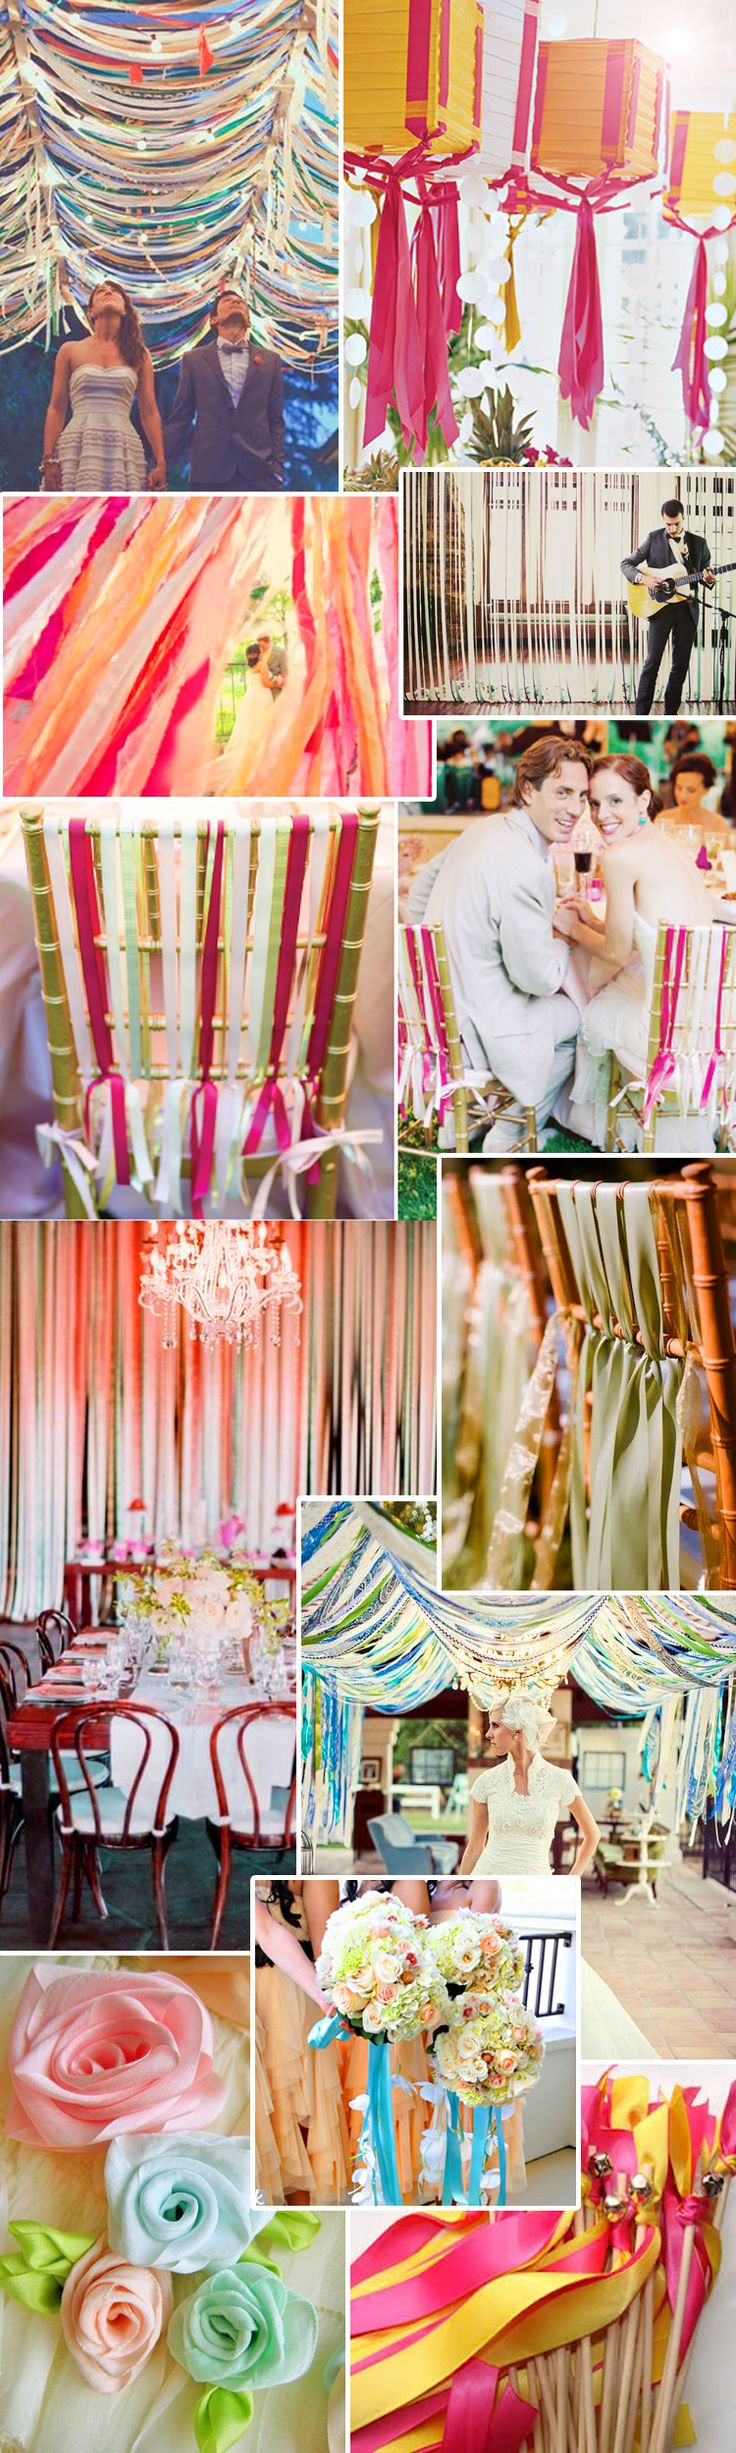 Ribbons! Love this for wedding decorations! Great way to add lots of color!: Wedding Decorations, Decorations Including, Wedding Ribbon Decorations Wow, Ribbon Wands, Wedding Ideas, Decor Inspiration, Art Wedding Ribbon Decorations, Chair Decorations